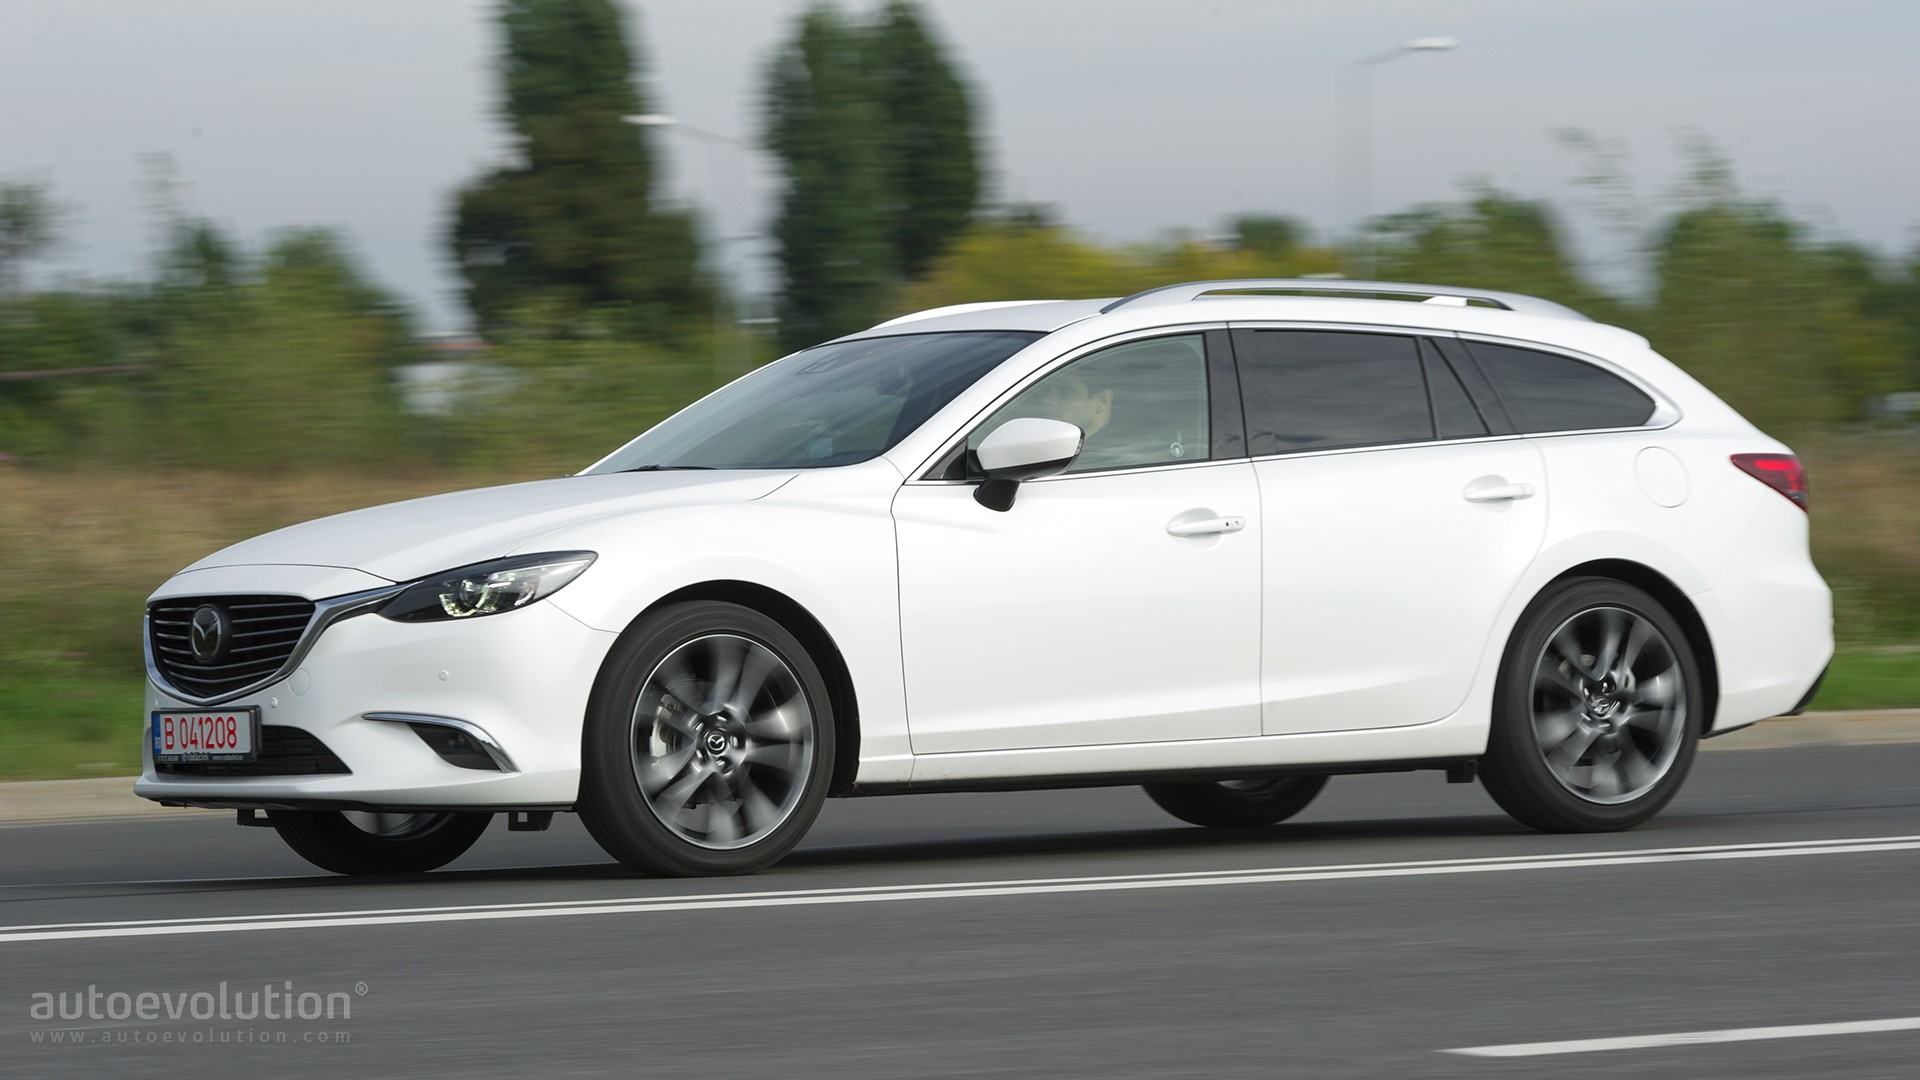 https://s1.cdn.autoevolution.com/images/testdrive/gallery/mazda6-wagon-22-skyactiv-d-review-2016_13.jpg